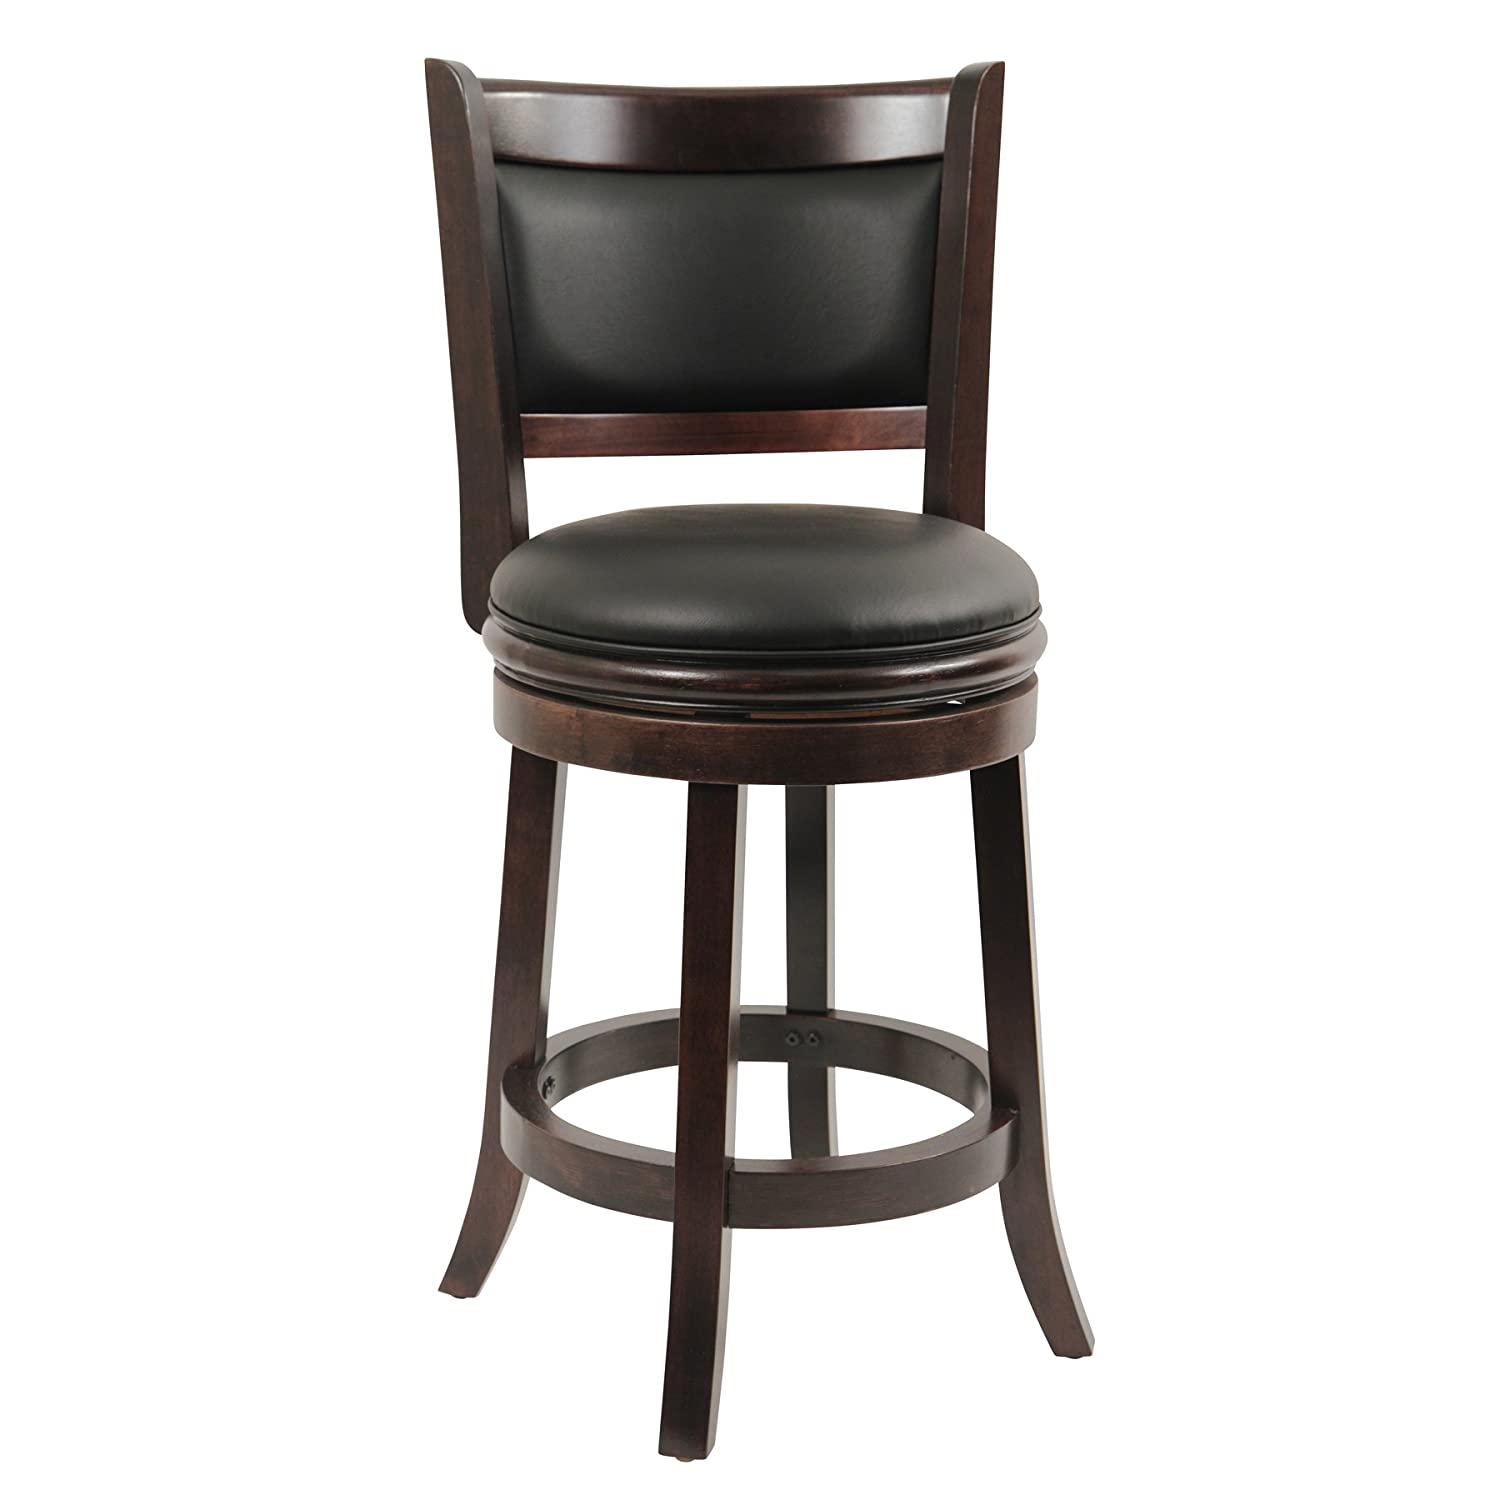 Amazon.com Boraam 48824 Augusta Counter Height Swivel Stool 24-Inch Cappuccino Kitchen u0026 Dining  sc 1 st  Amazon.com : counter height swivel stools - islam-shia.org